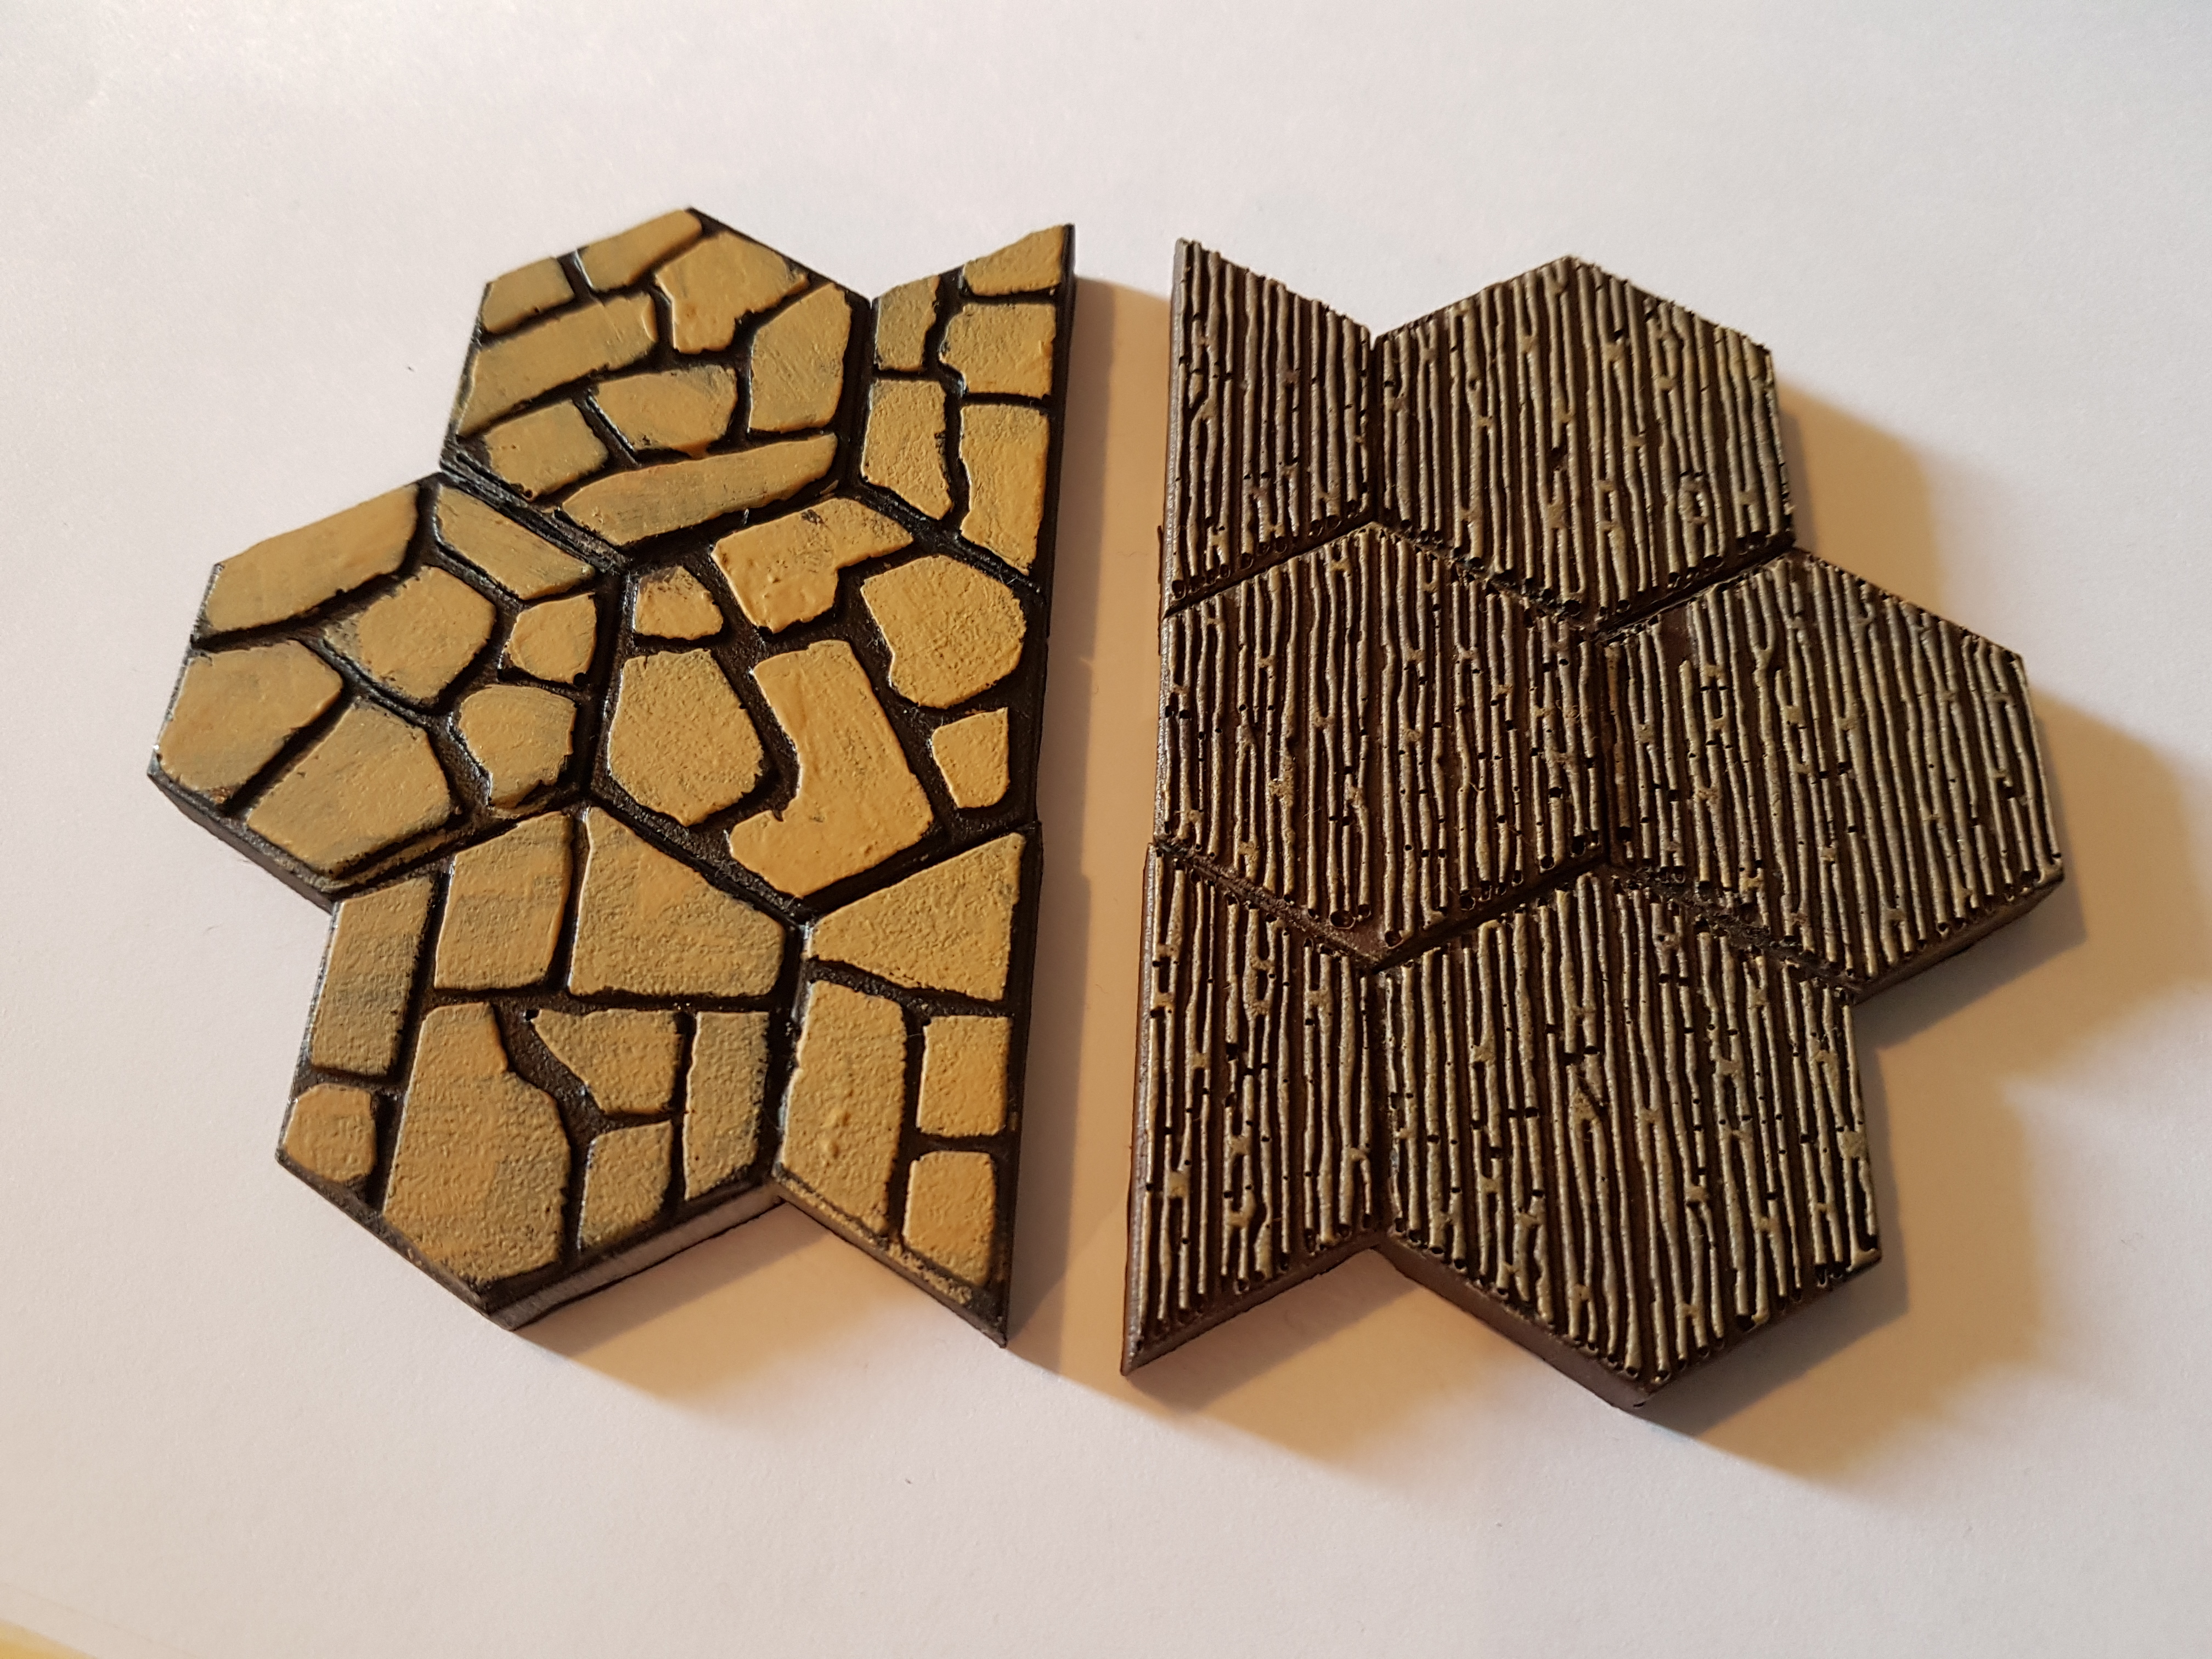 0012 Wood and Large Cobblestone Hexagon Floor Mould